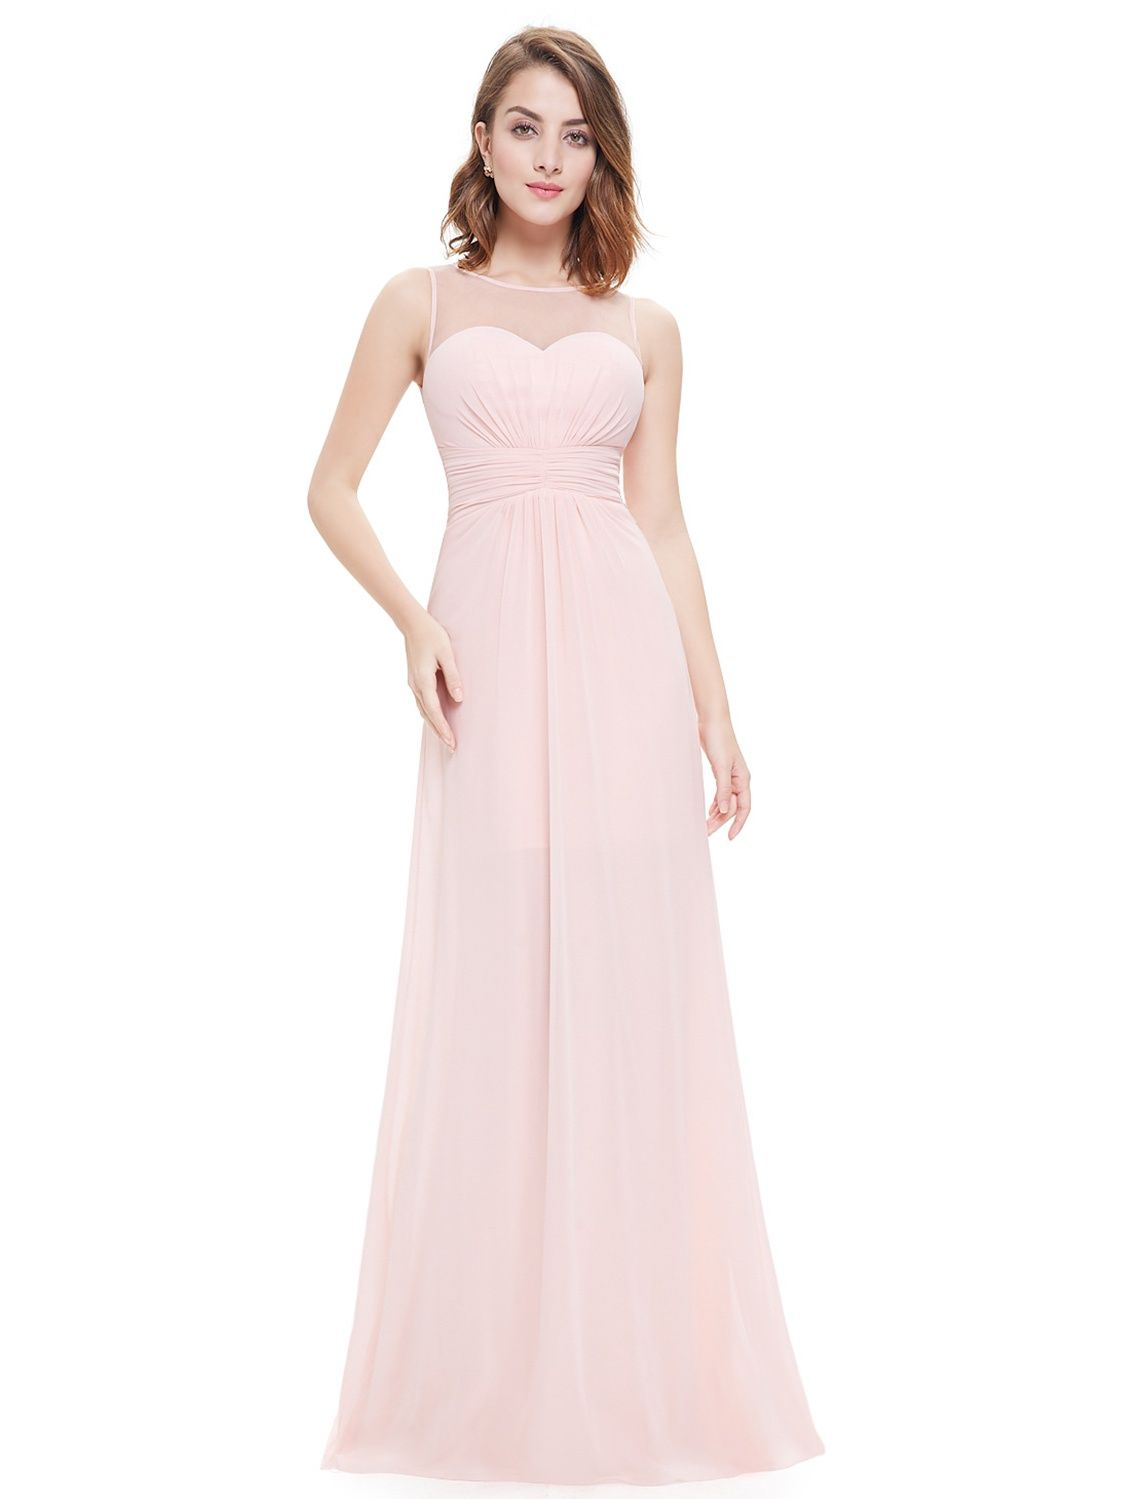 bbdc73be28 Ever-Pretty Women s Sexy Long A-Line Sleeveless Tulle Neckline Formal  Evening Prom Party Bridesmaid Maxi Dresses for Women 08761 Pink US  14 Tulle